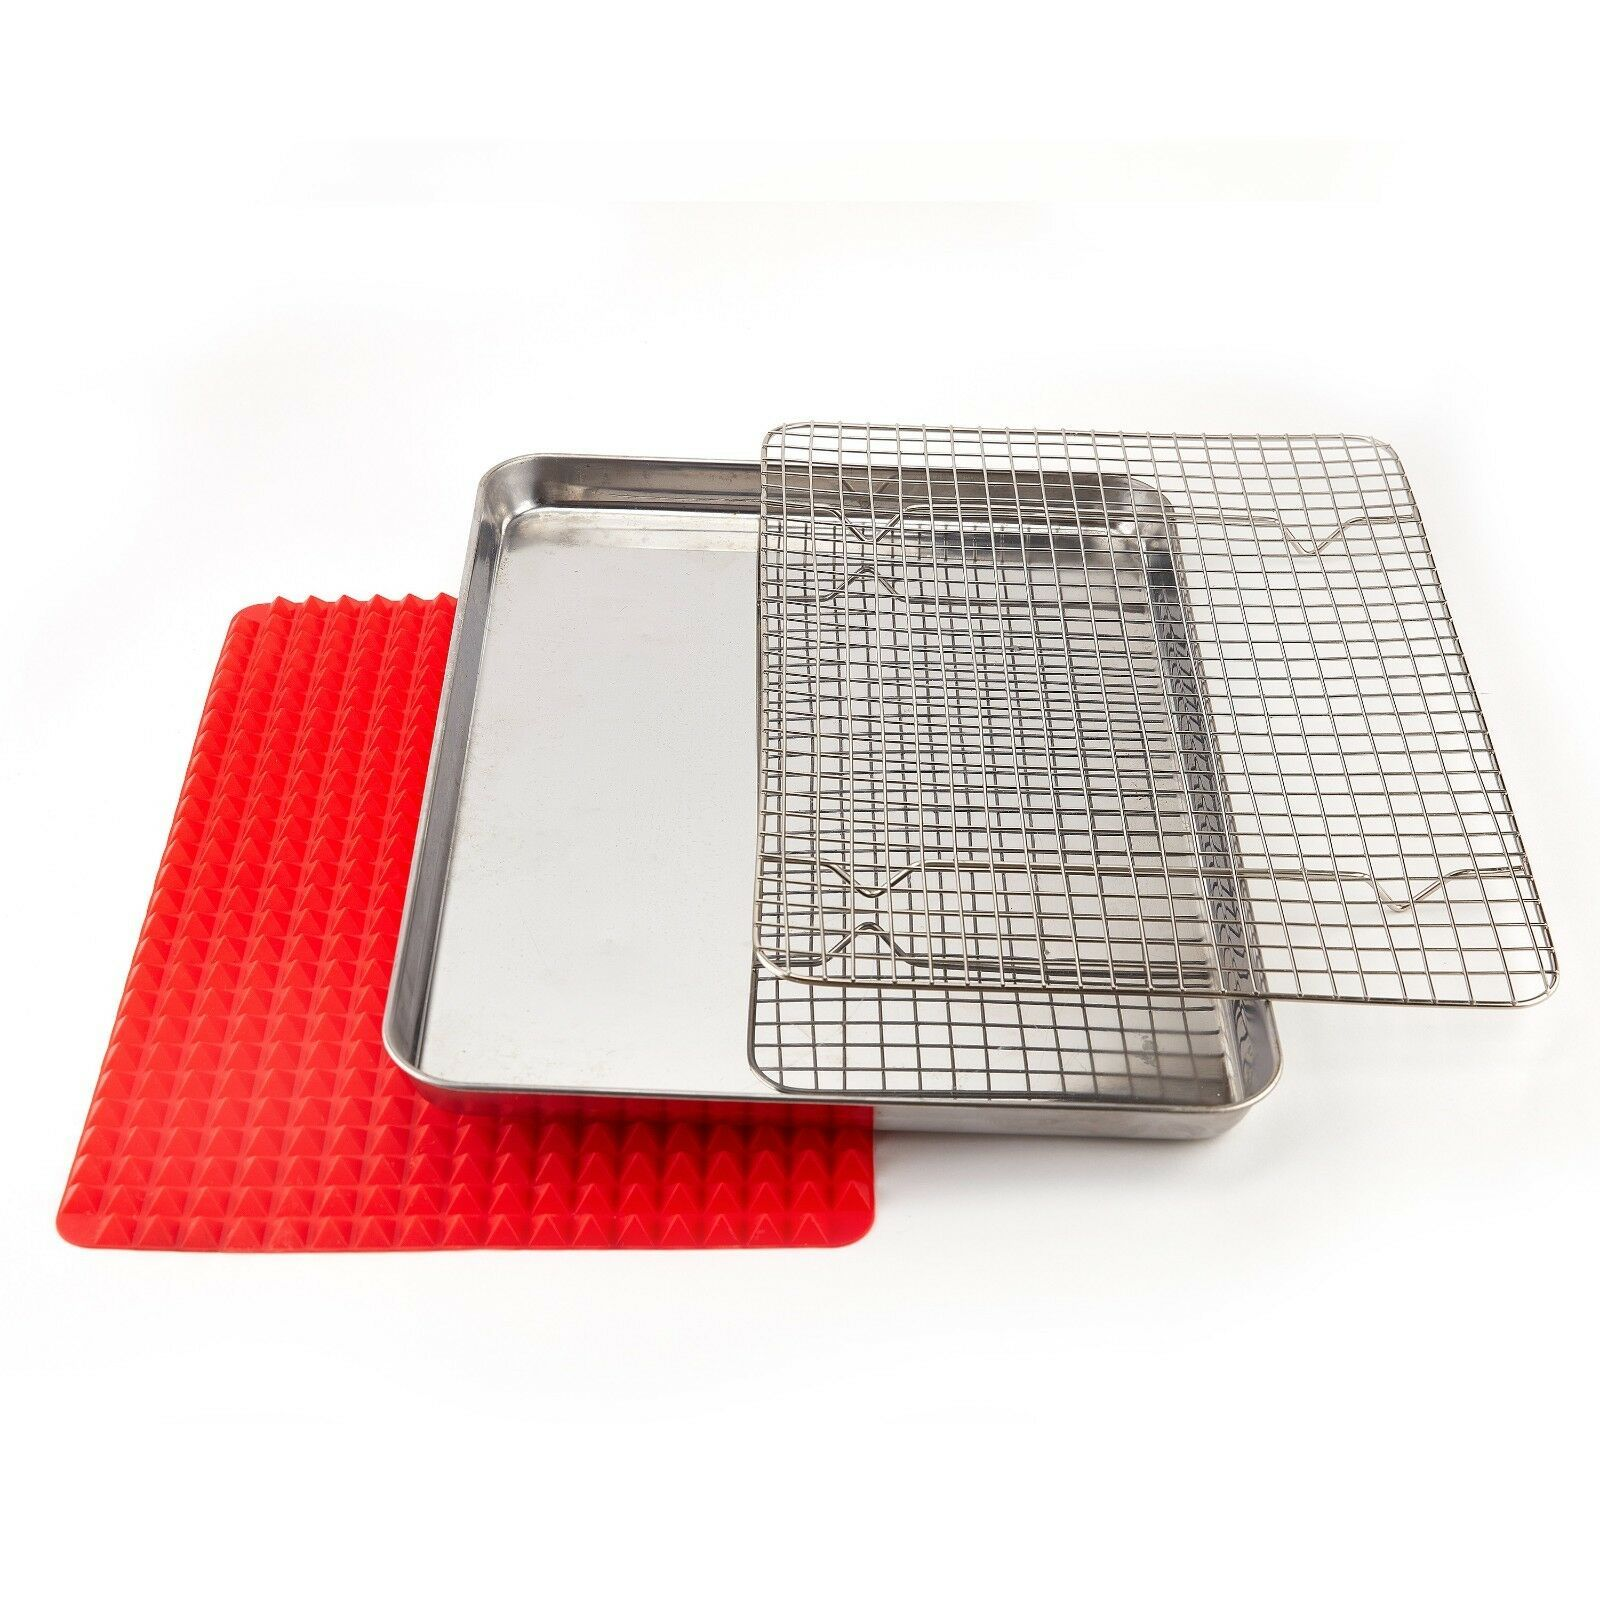 Details about stainless steel baking sheet cooling rack